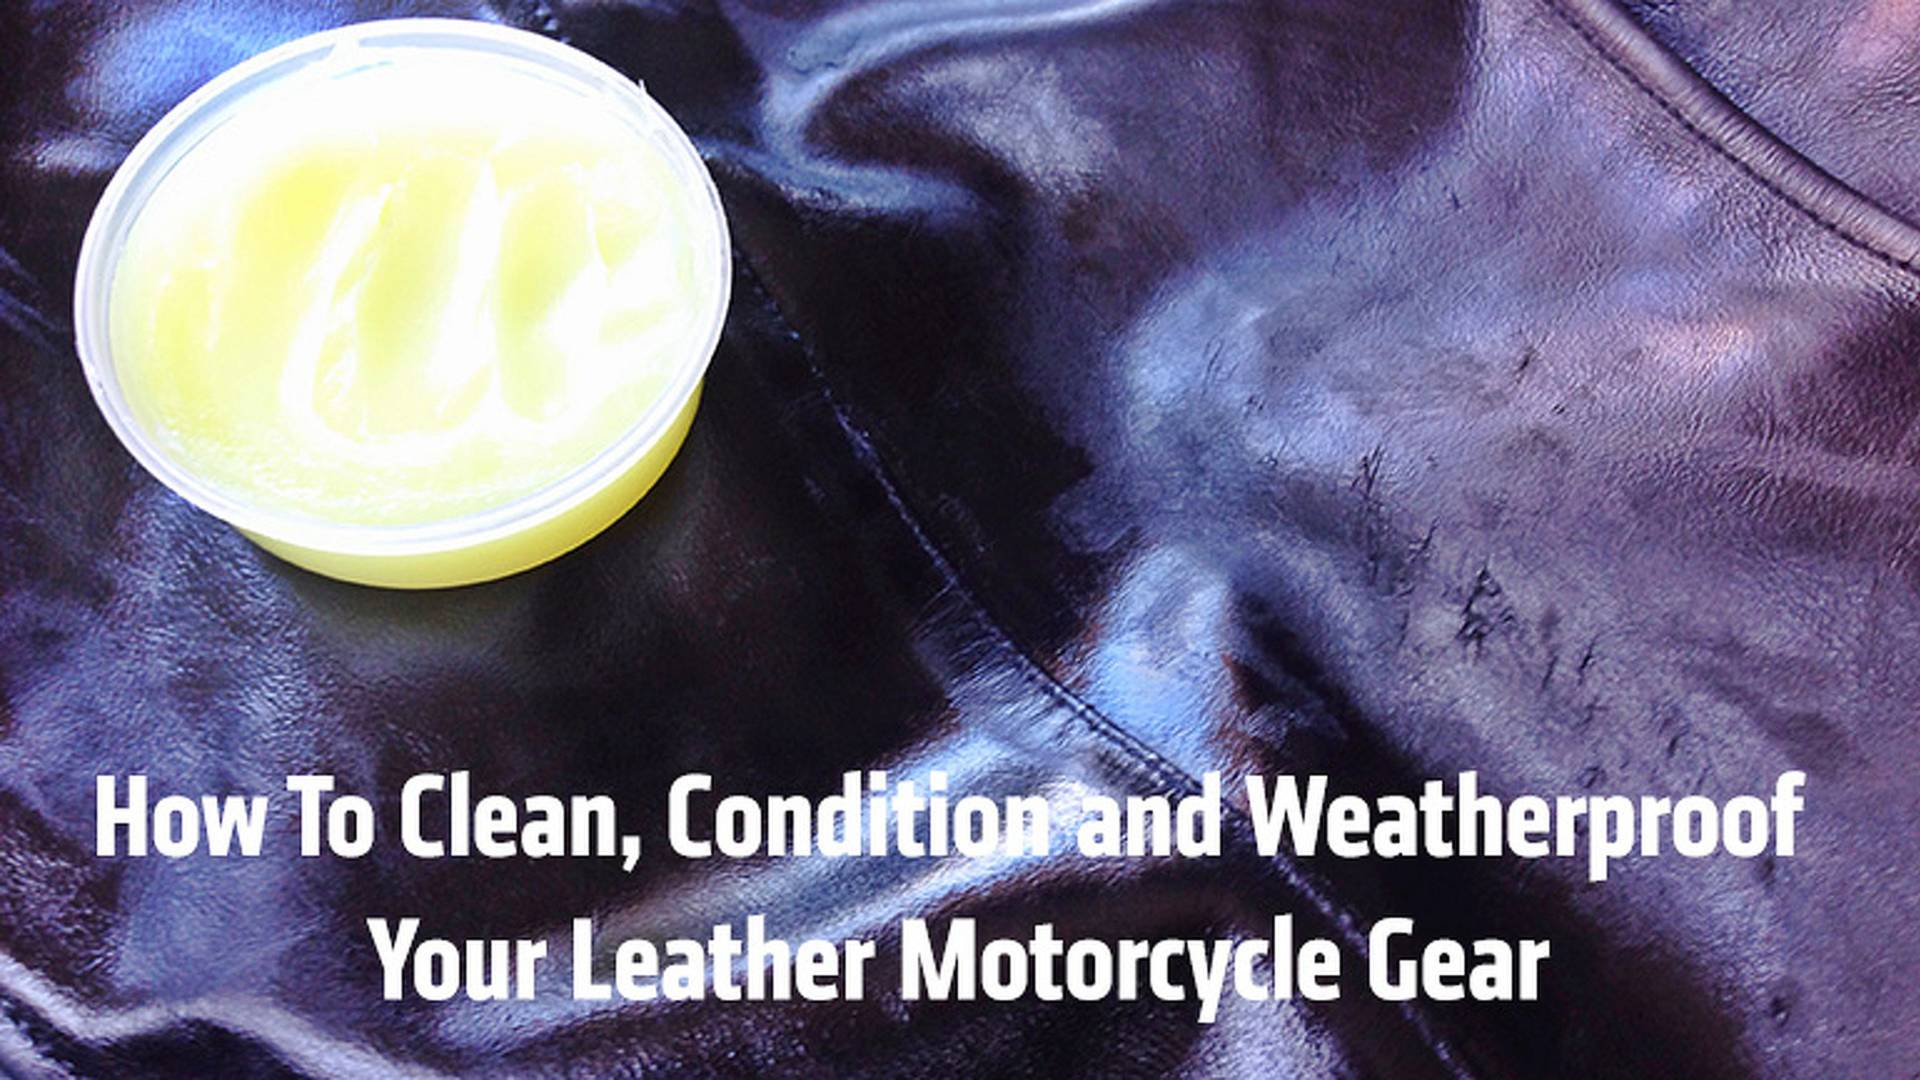 How To Clean, Protect and Weatherproof Your Leather